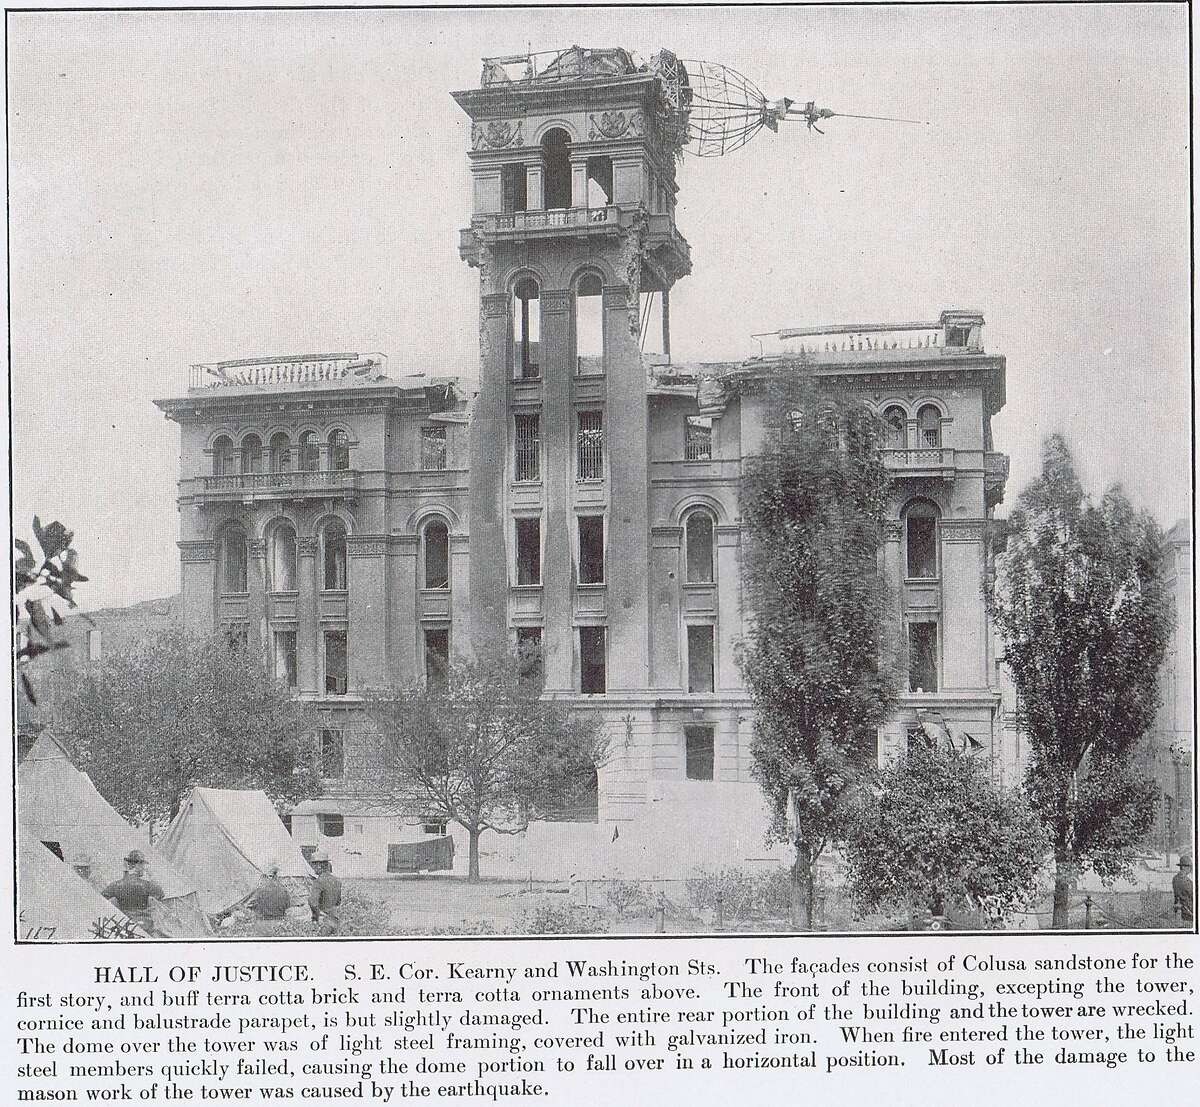 Hall of Justice, southeast corner of Kearny and Washington Streets. The facades consist of Colusa sandstone for the first story, and terra cotta above. The front of the building, except for the tower and parapet, were slightly damaged. Most of the damage from the mason work was caused by the earthquake...